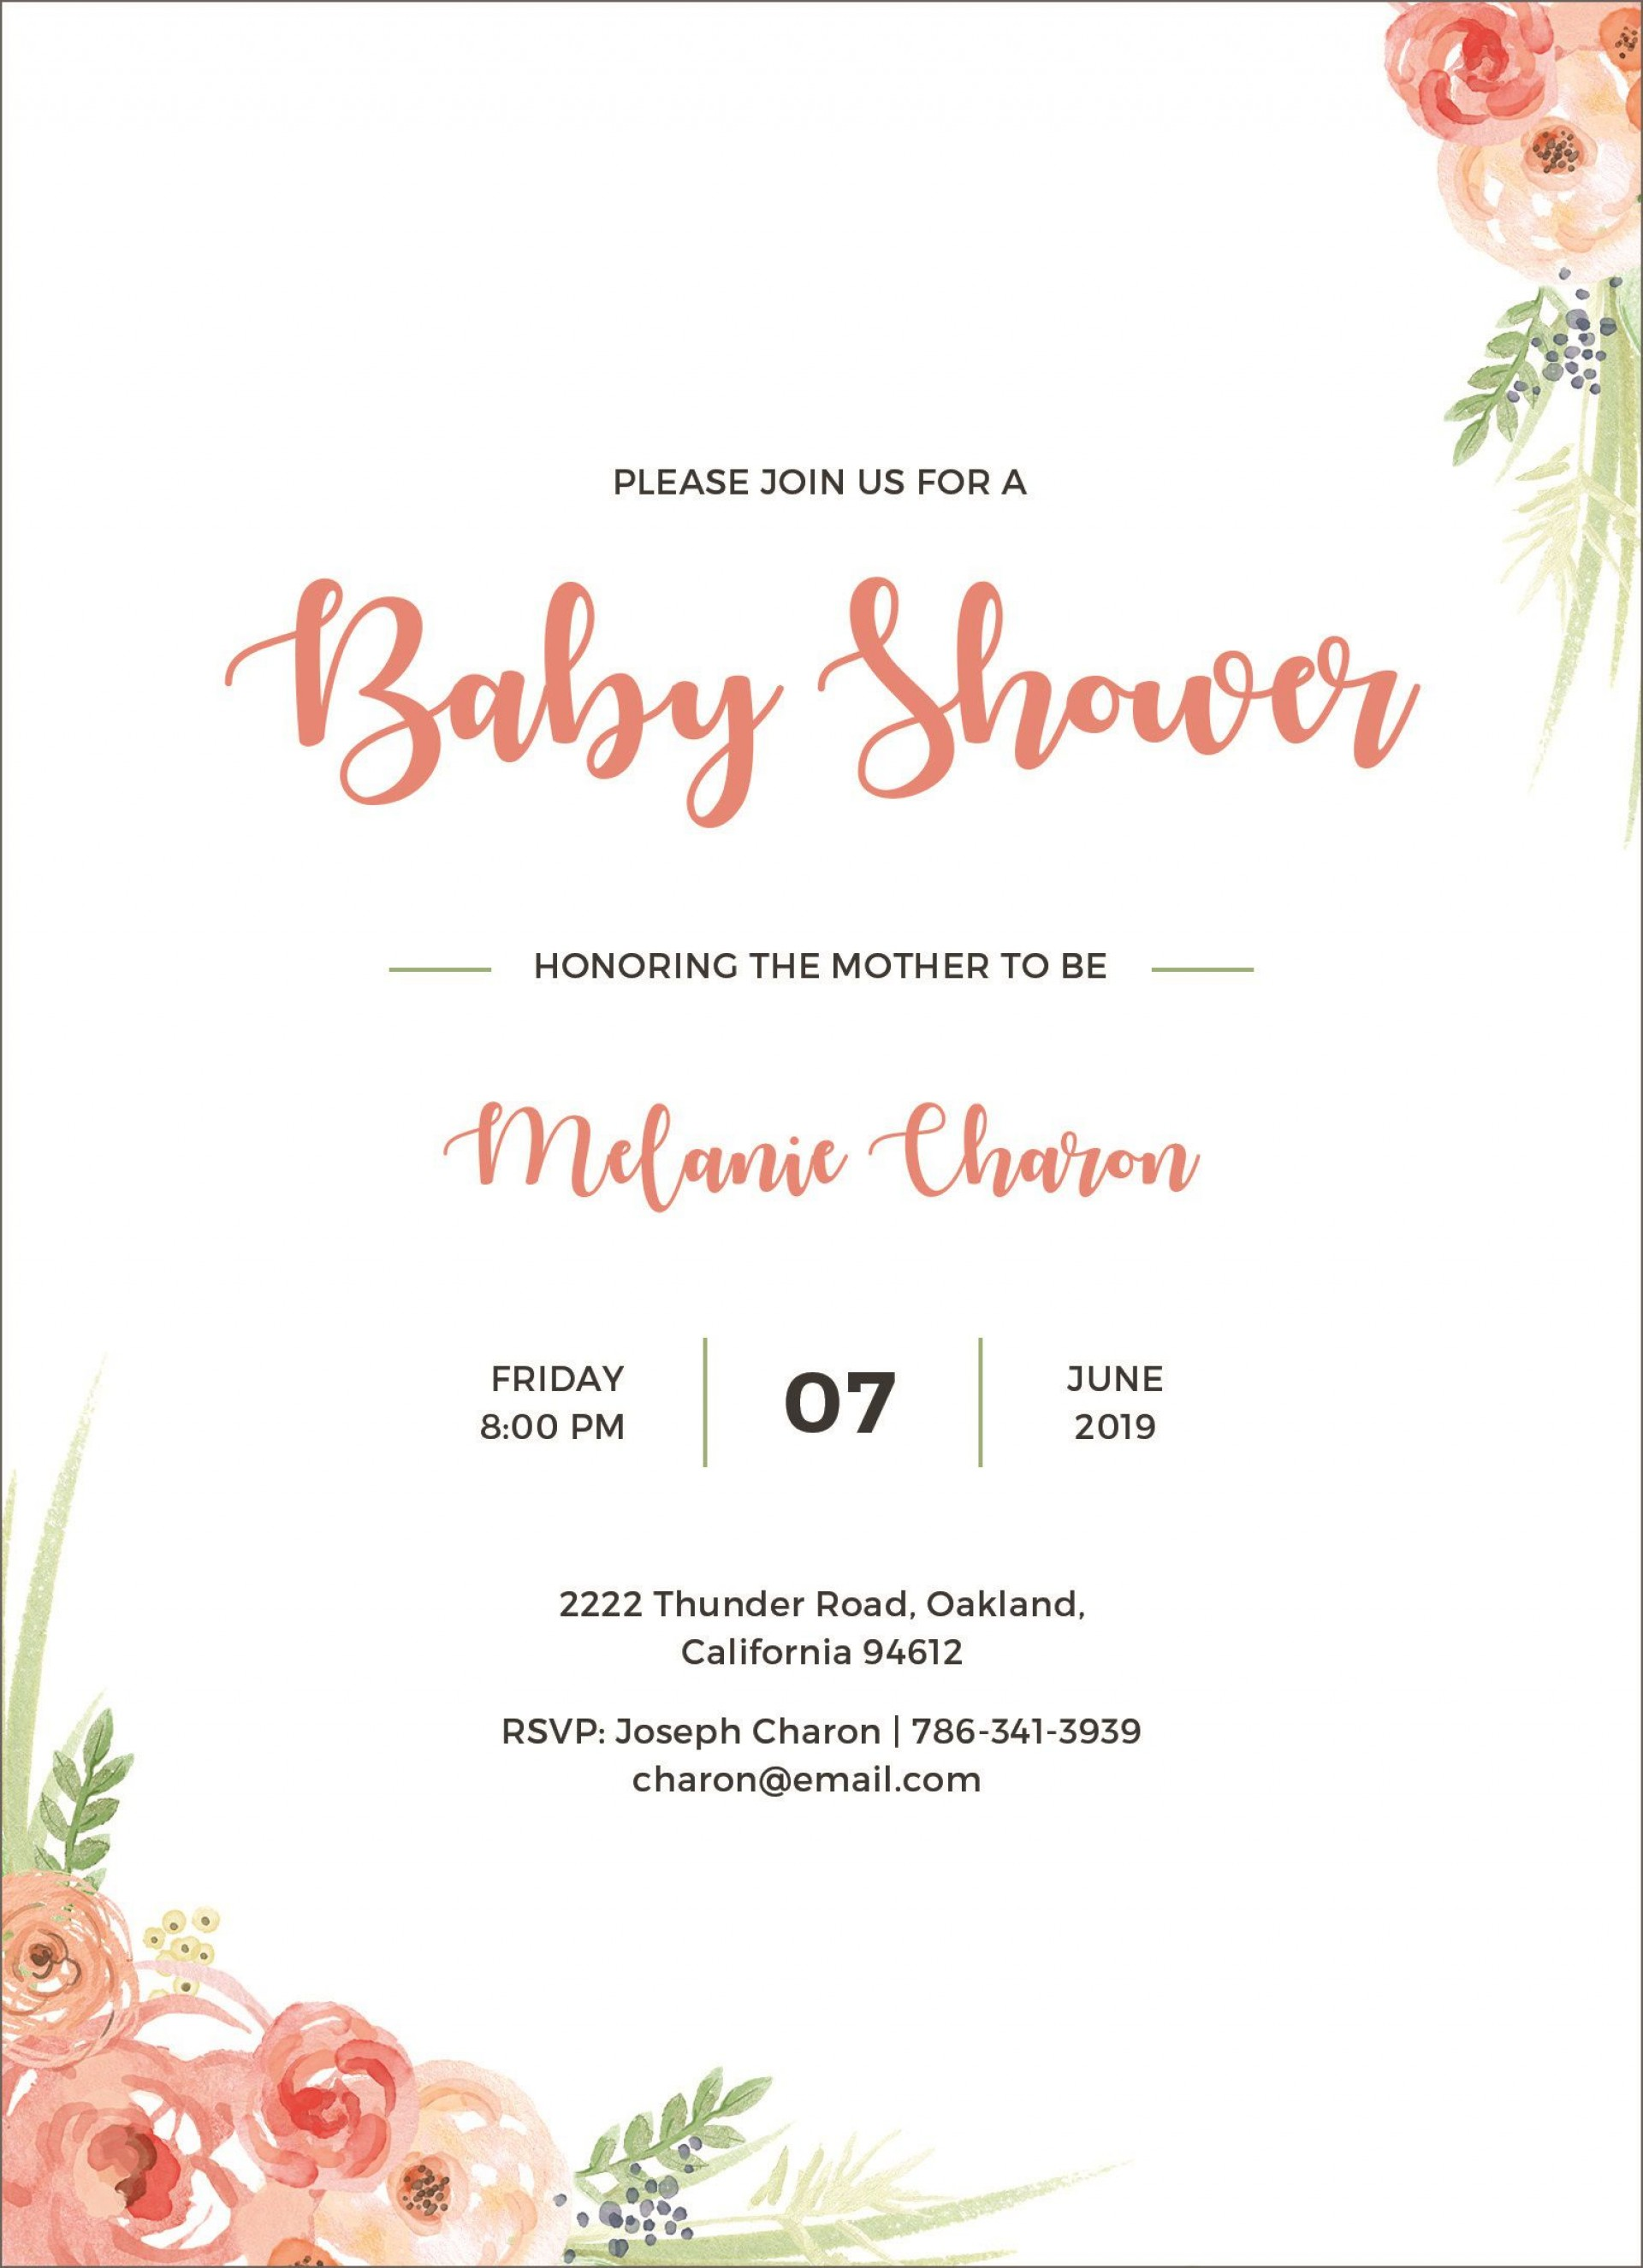 004 Stupendou Baby Shower Announcement Template Concept  Templates Invitation India Indian Free With Photo1920